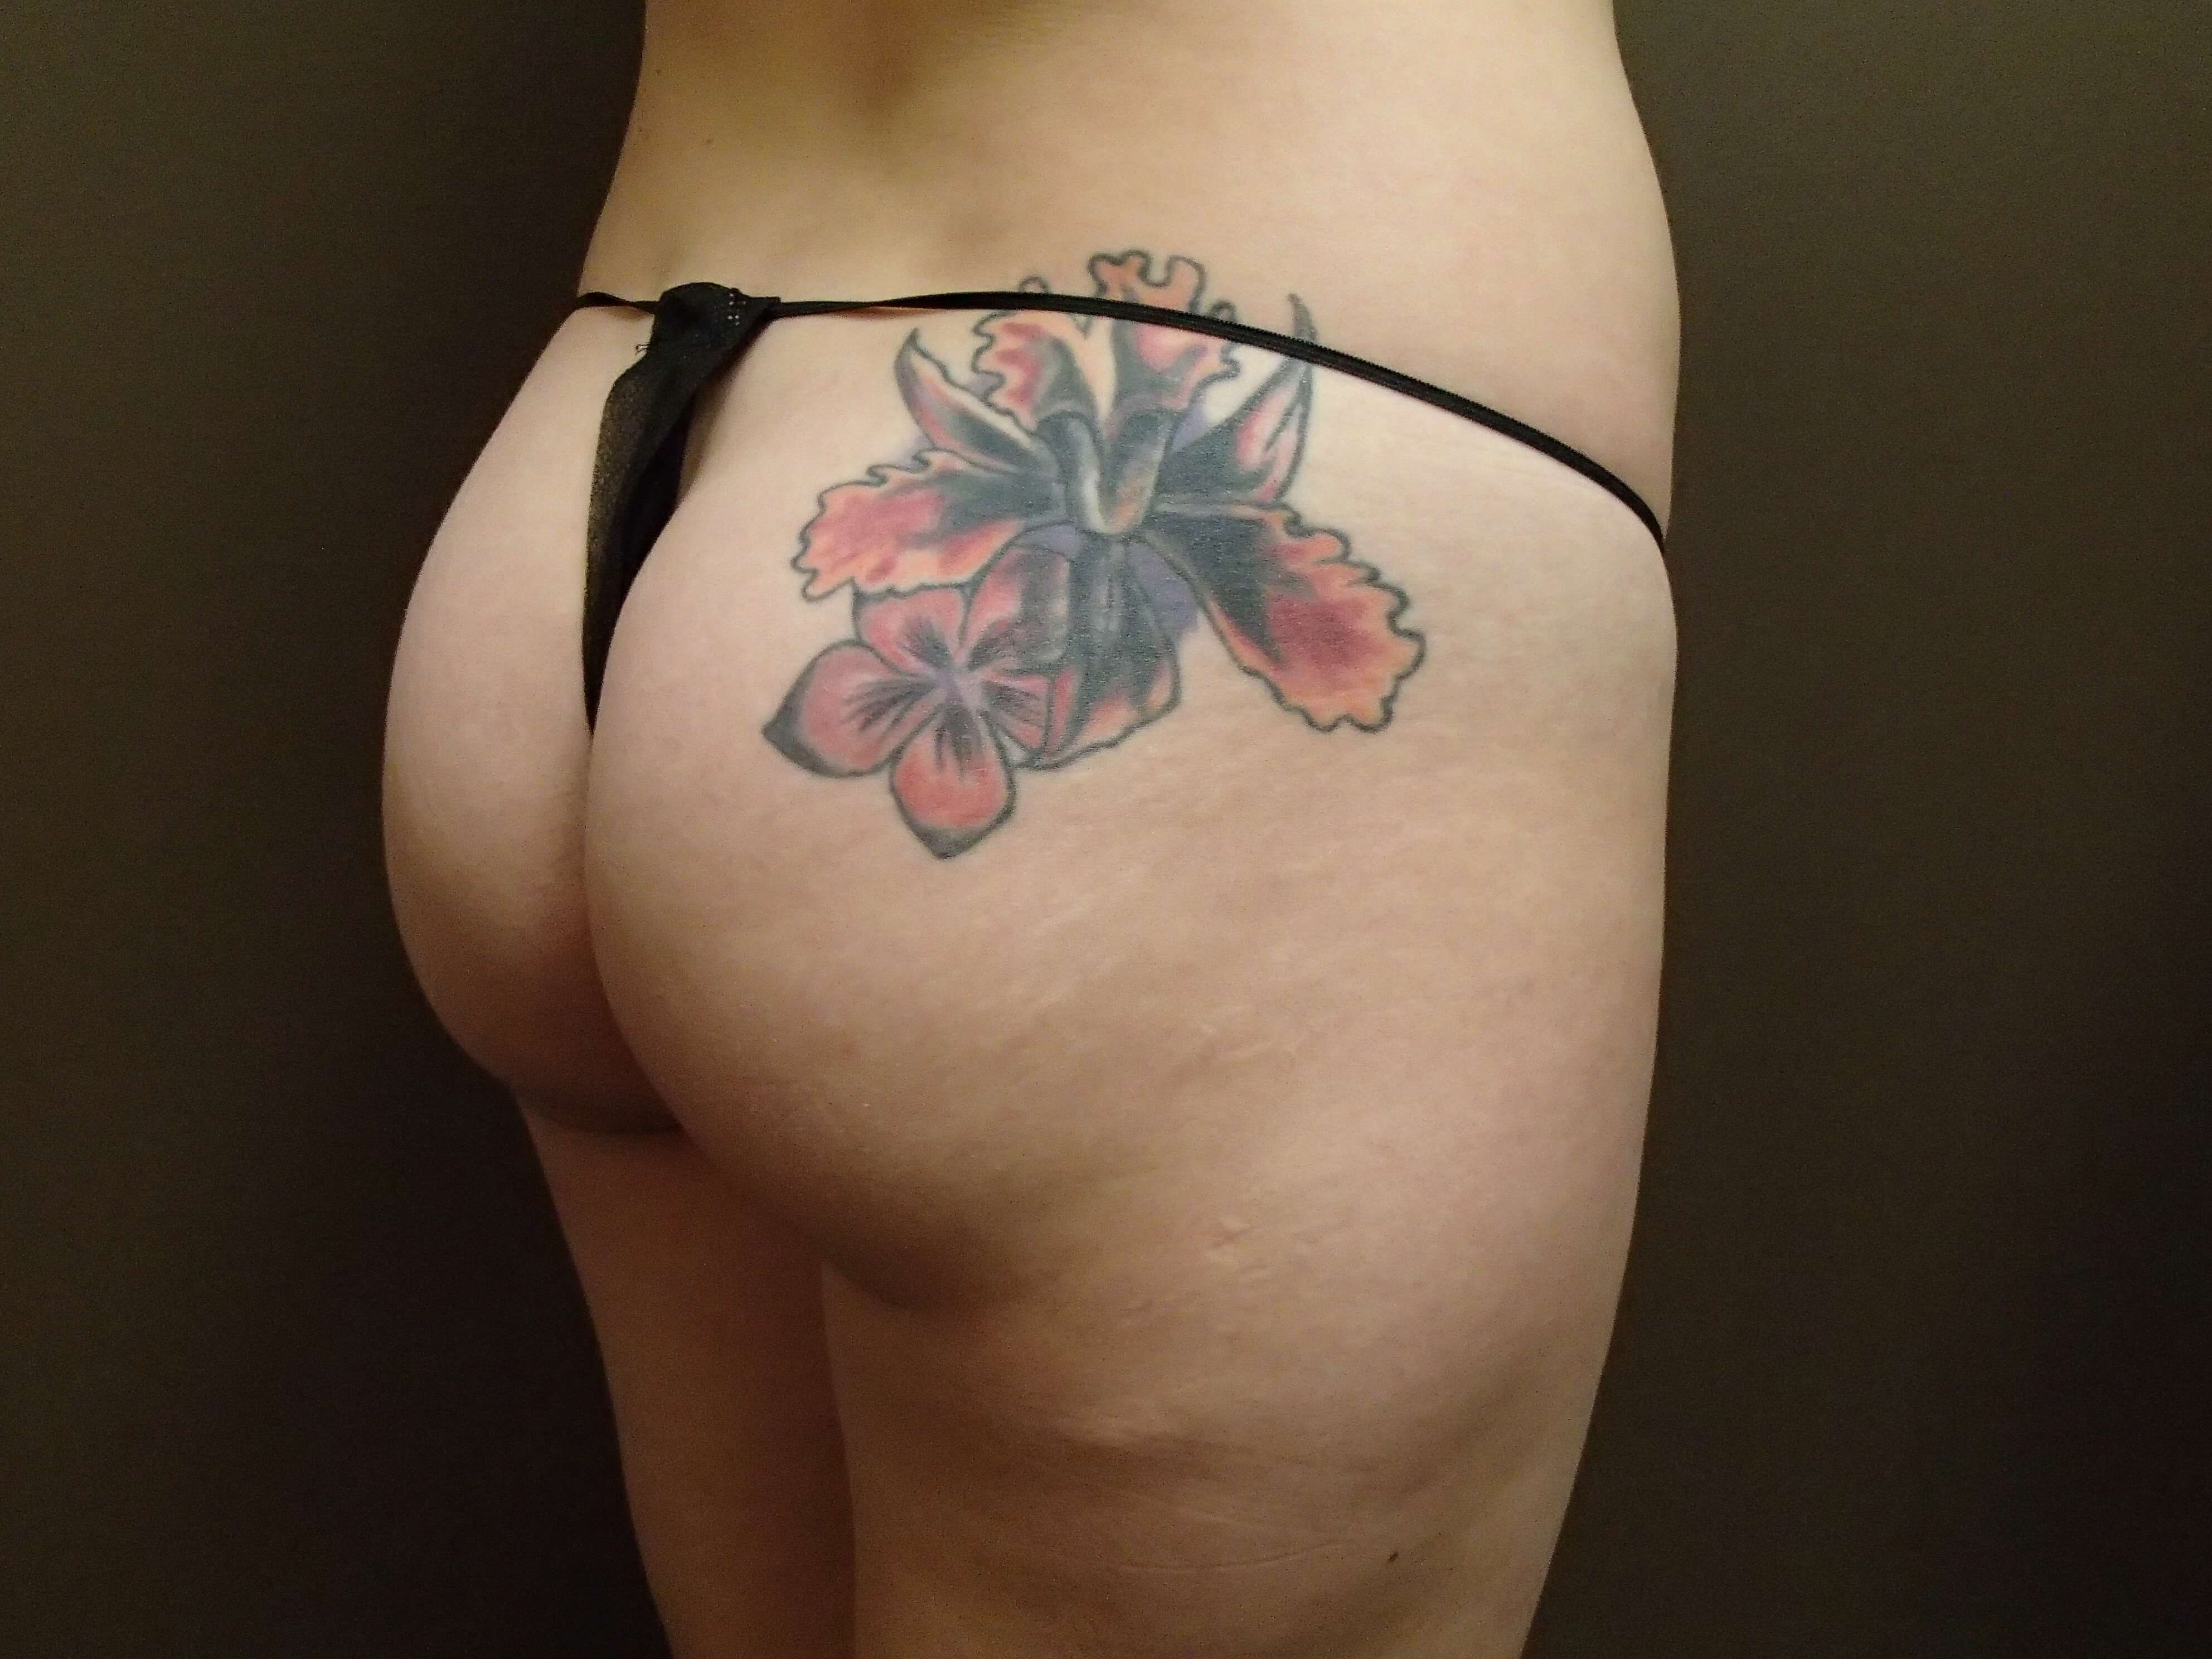 Brazilian Butt Lift (BBL) Before